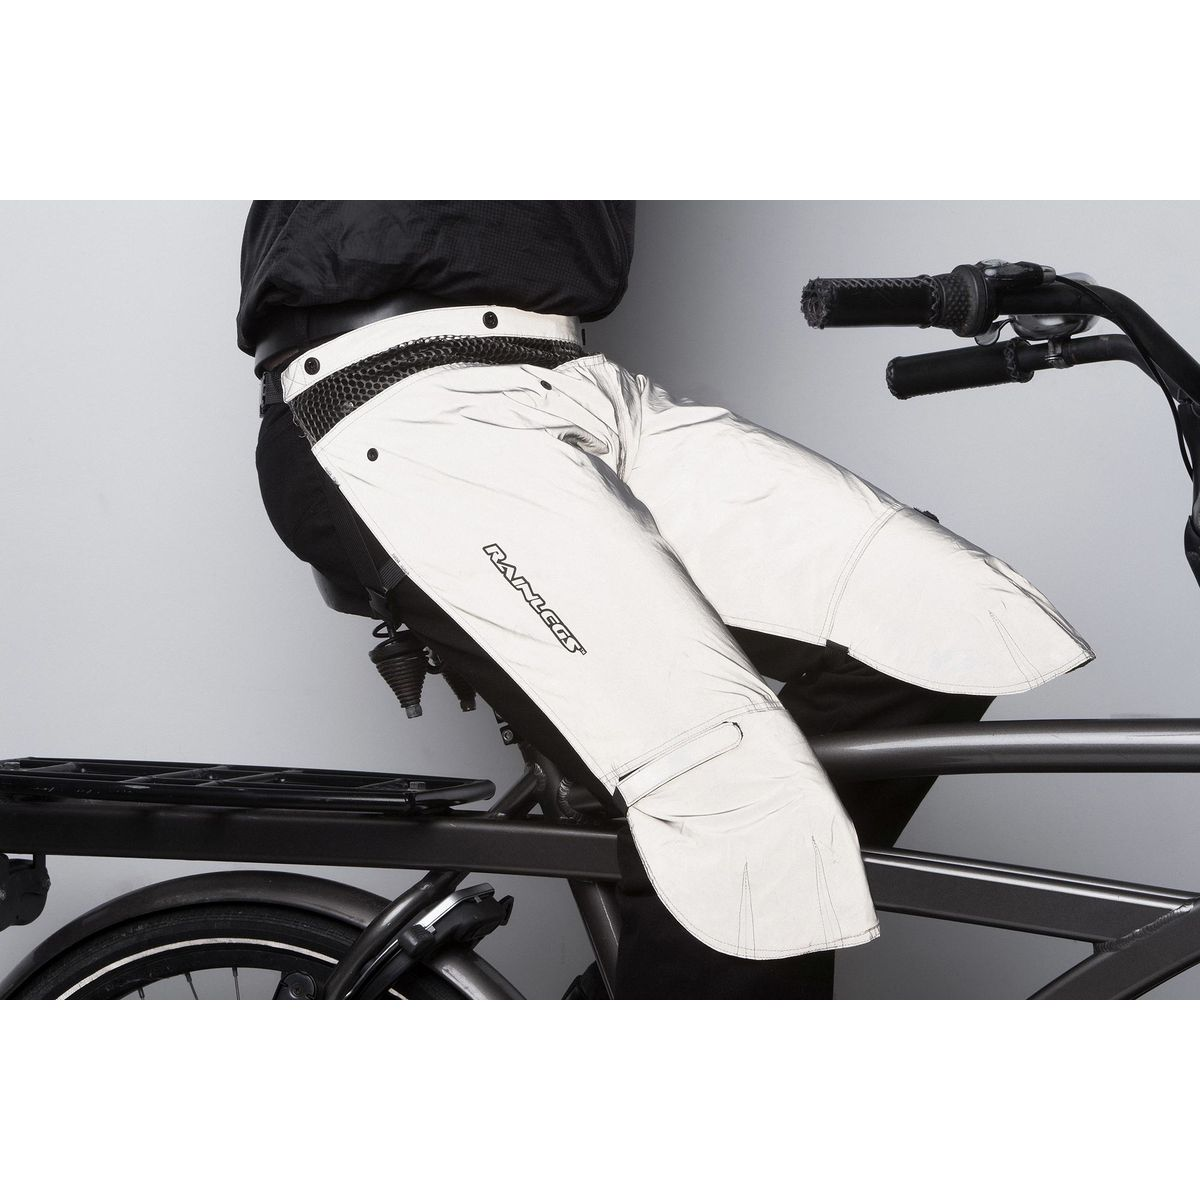 RAINLEGS Rainlegs Reflective rain protection | Trousers